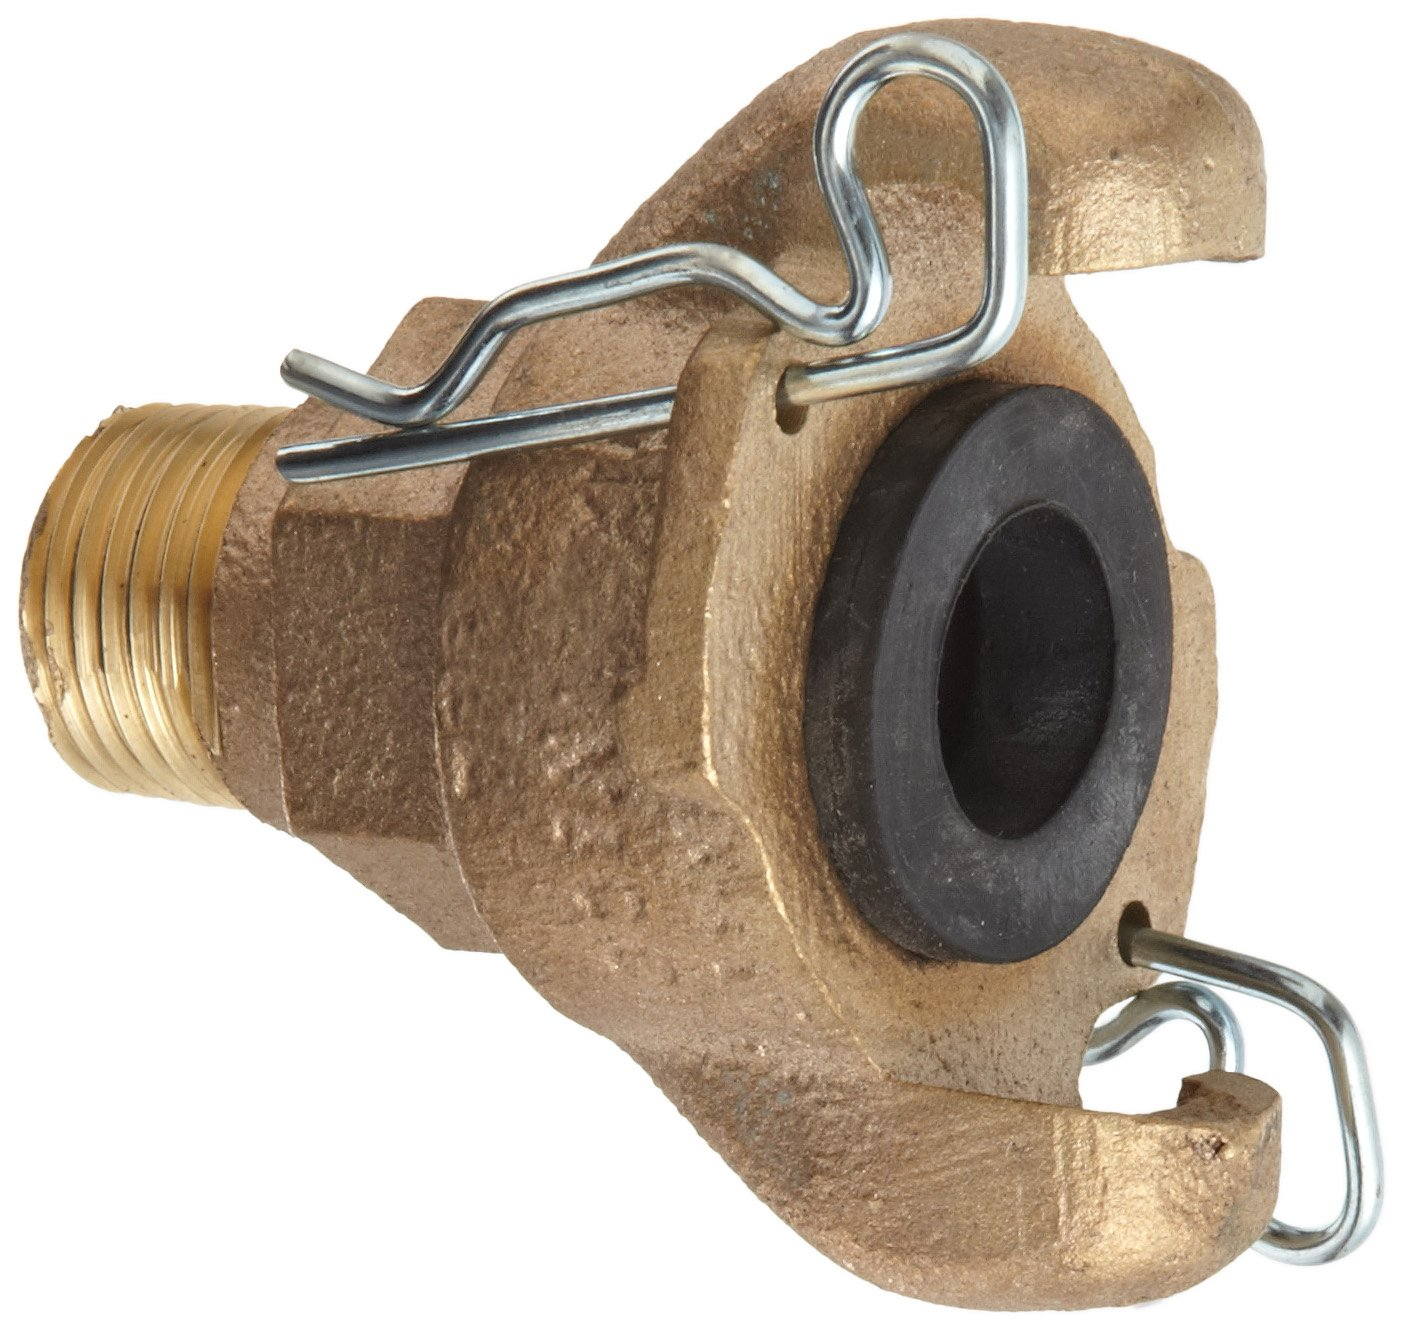 Dixon Air King AB2 Brass Air Hose Fitting, 2 Lug Universal Coupling, 1/2'' NPT Male by Dixon Valve & Coupling